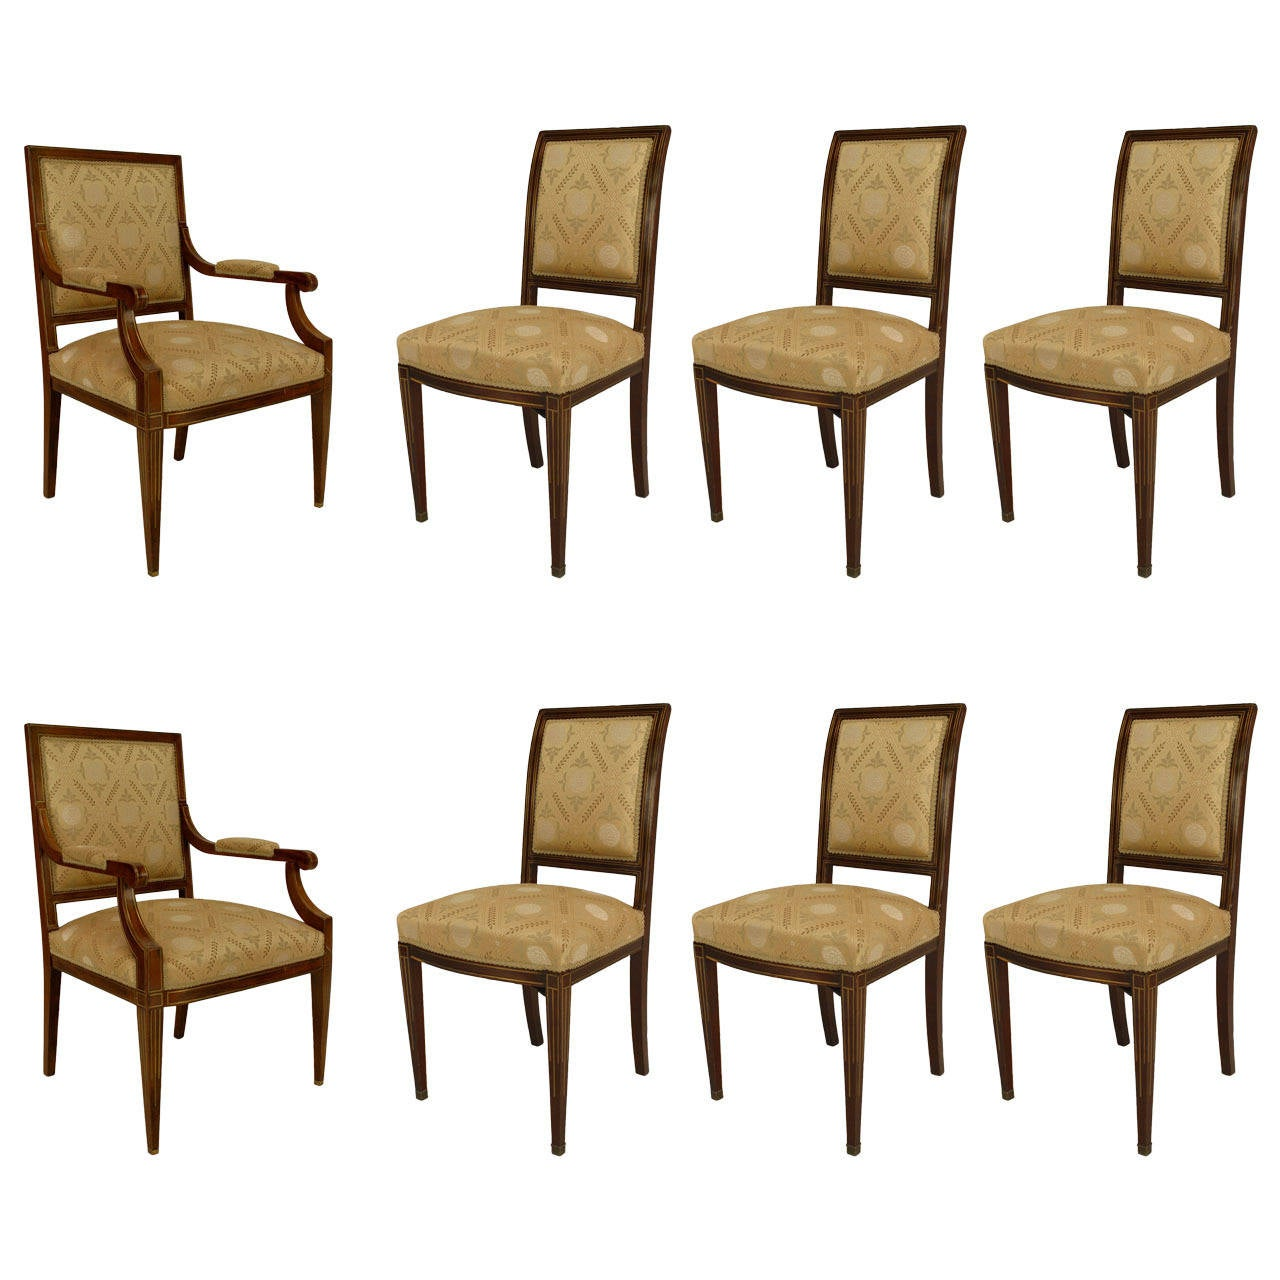 Set of 8 19th c. Continental Baltic Upholstered Mahogany Chairs